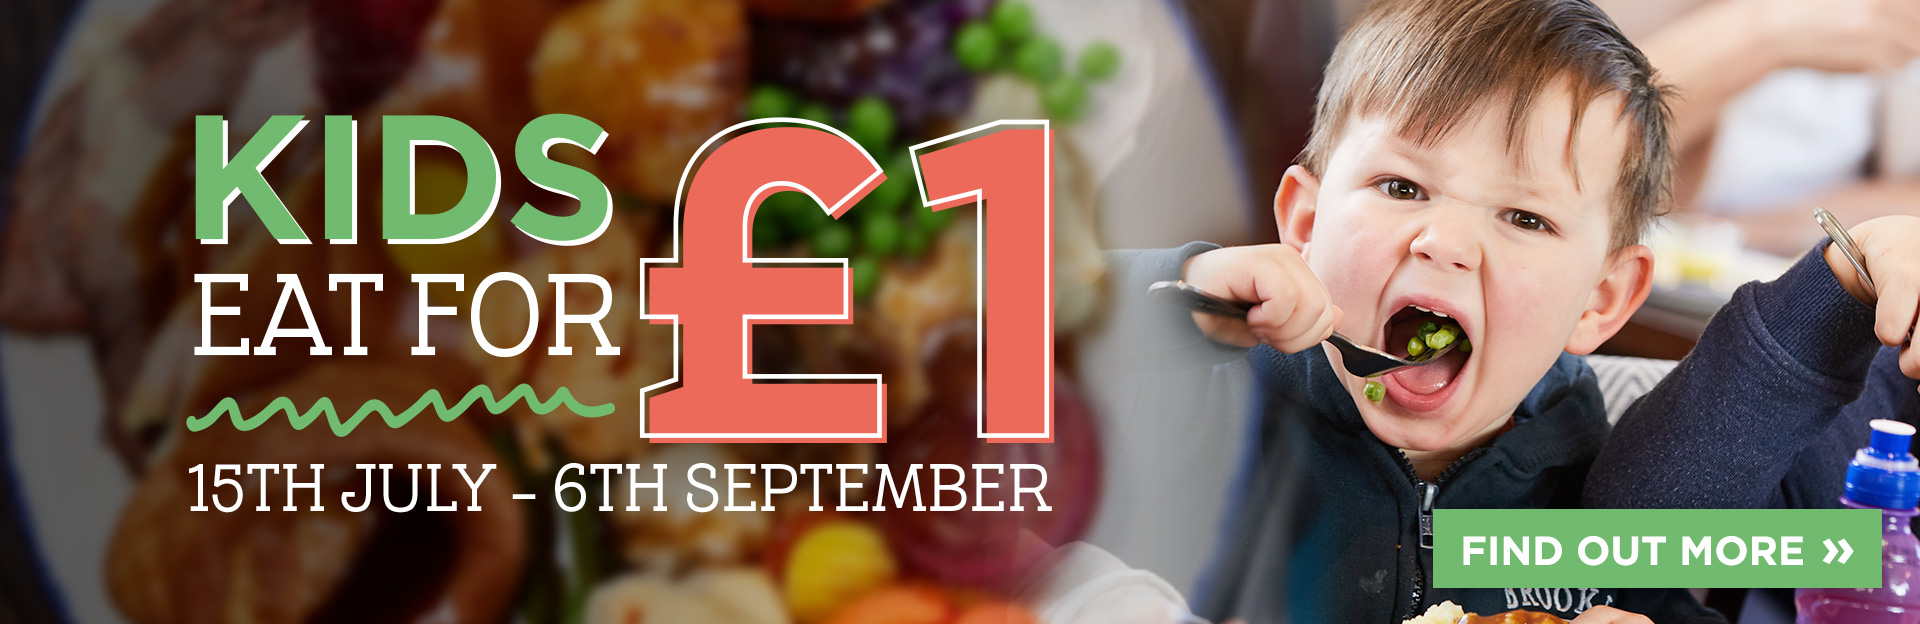 Kids Eat for £1 at The Pig & Whistle